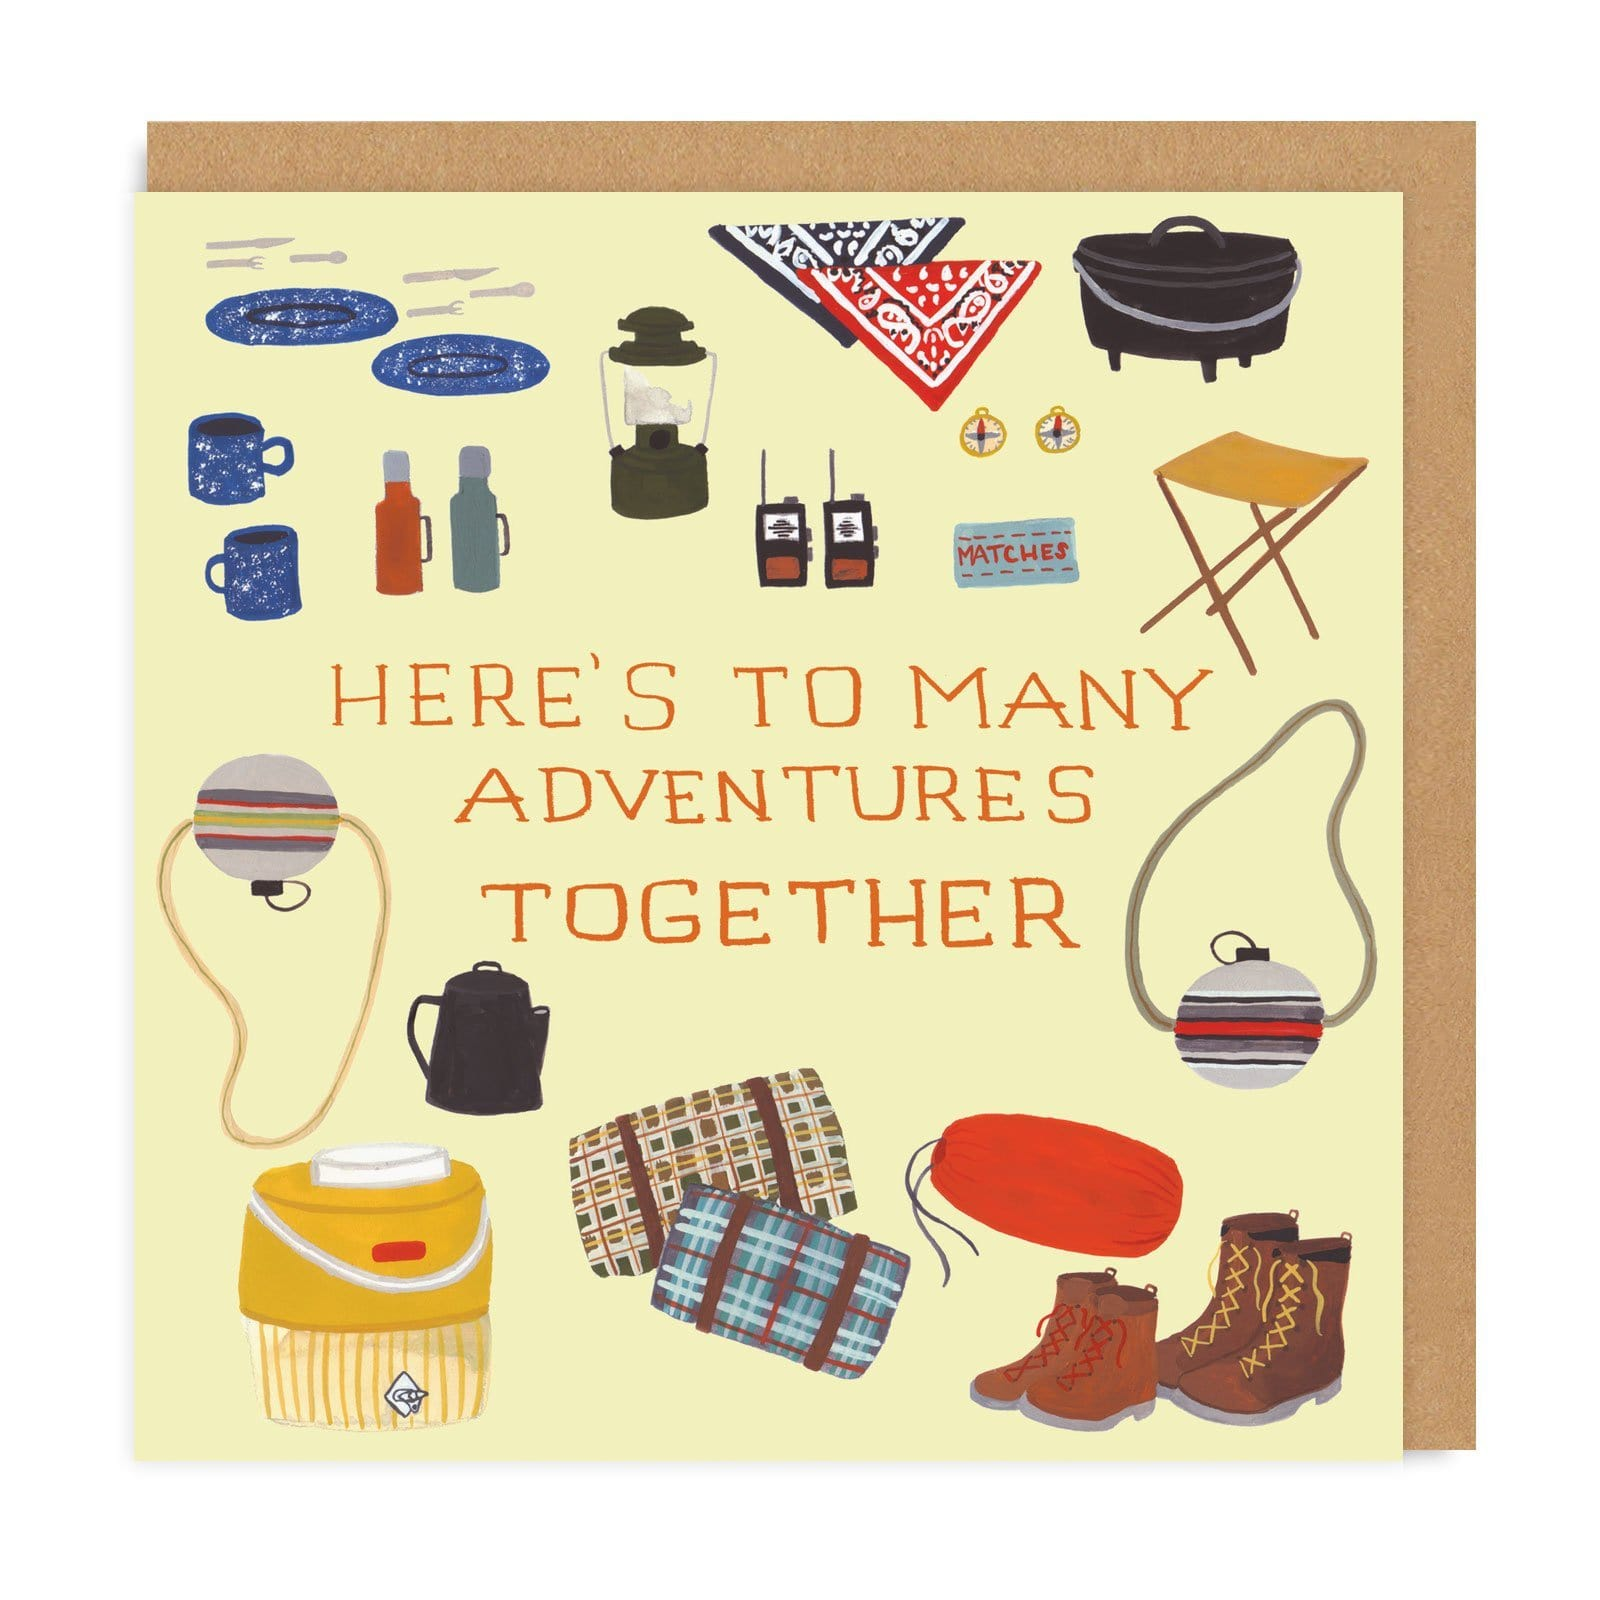 Brown square greetings card with illustrated camping gear including blankets, walking boots and thermal cups, with orange adventure text